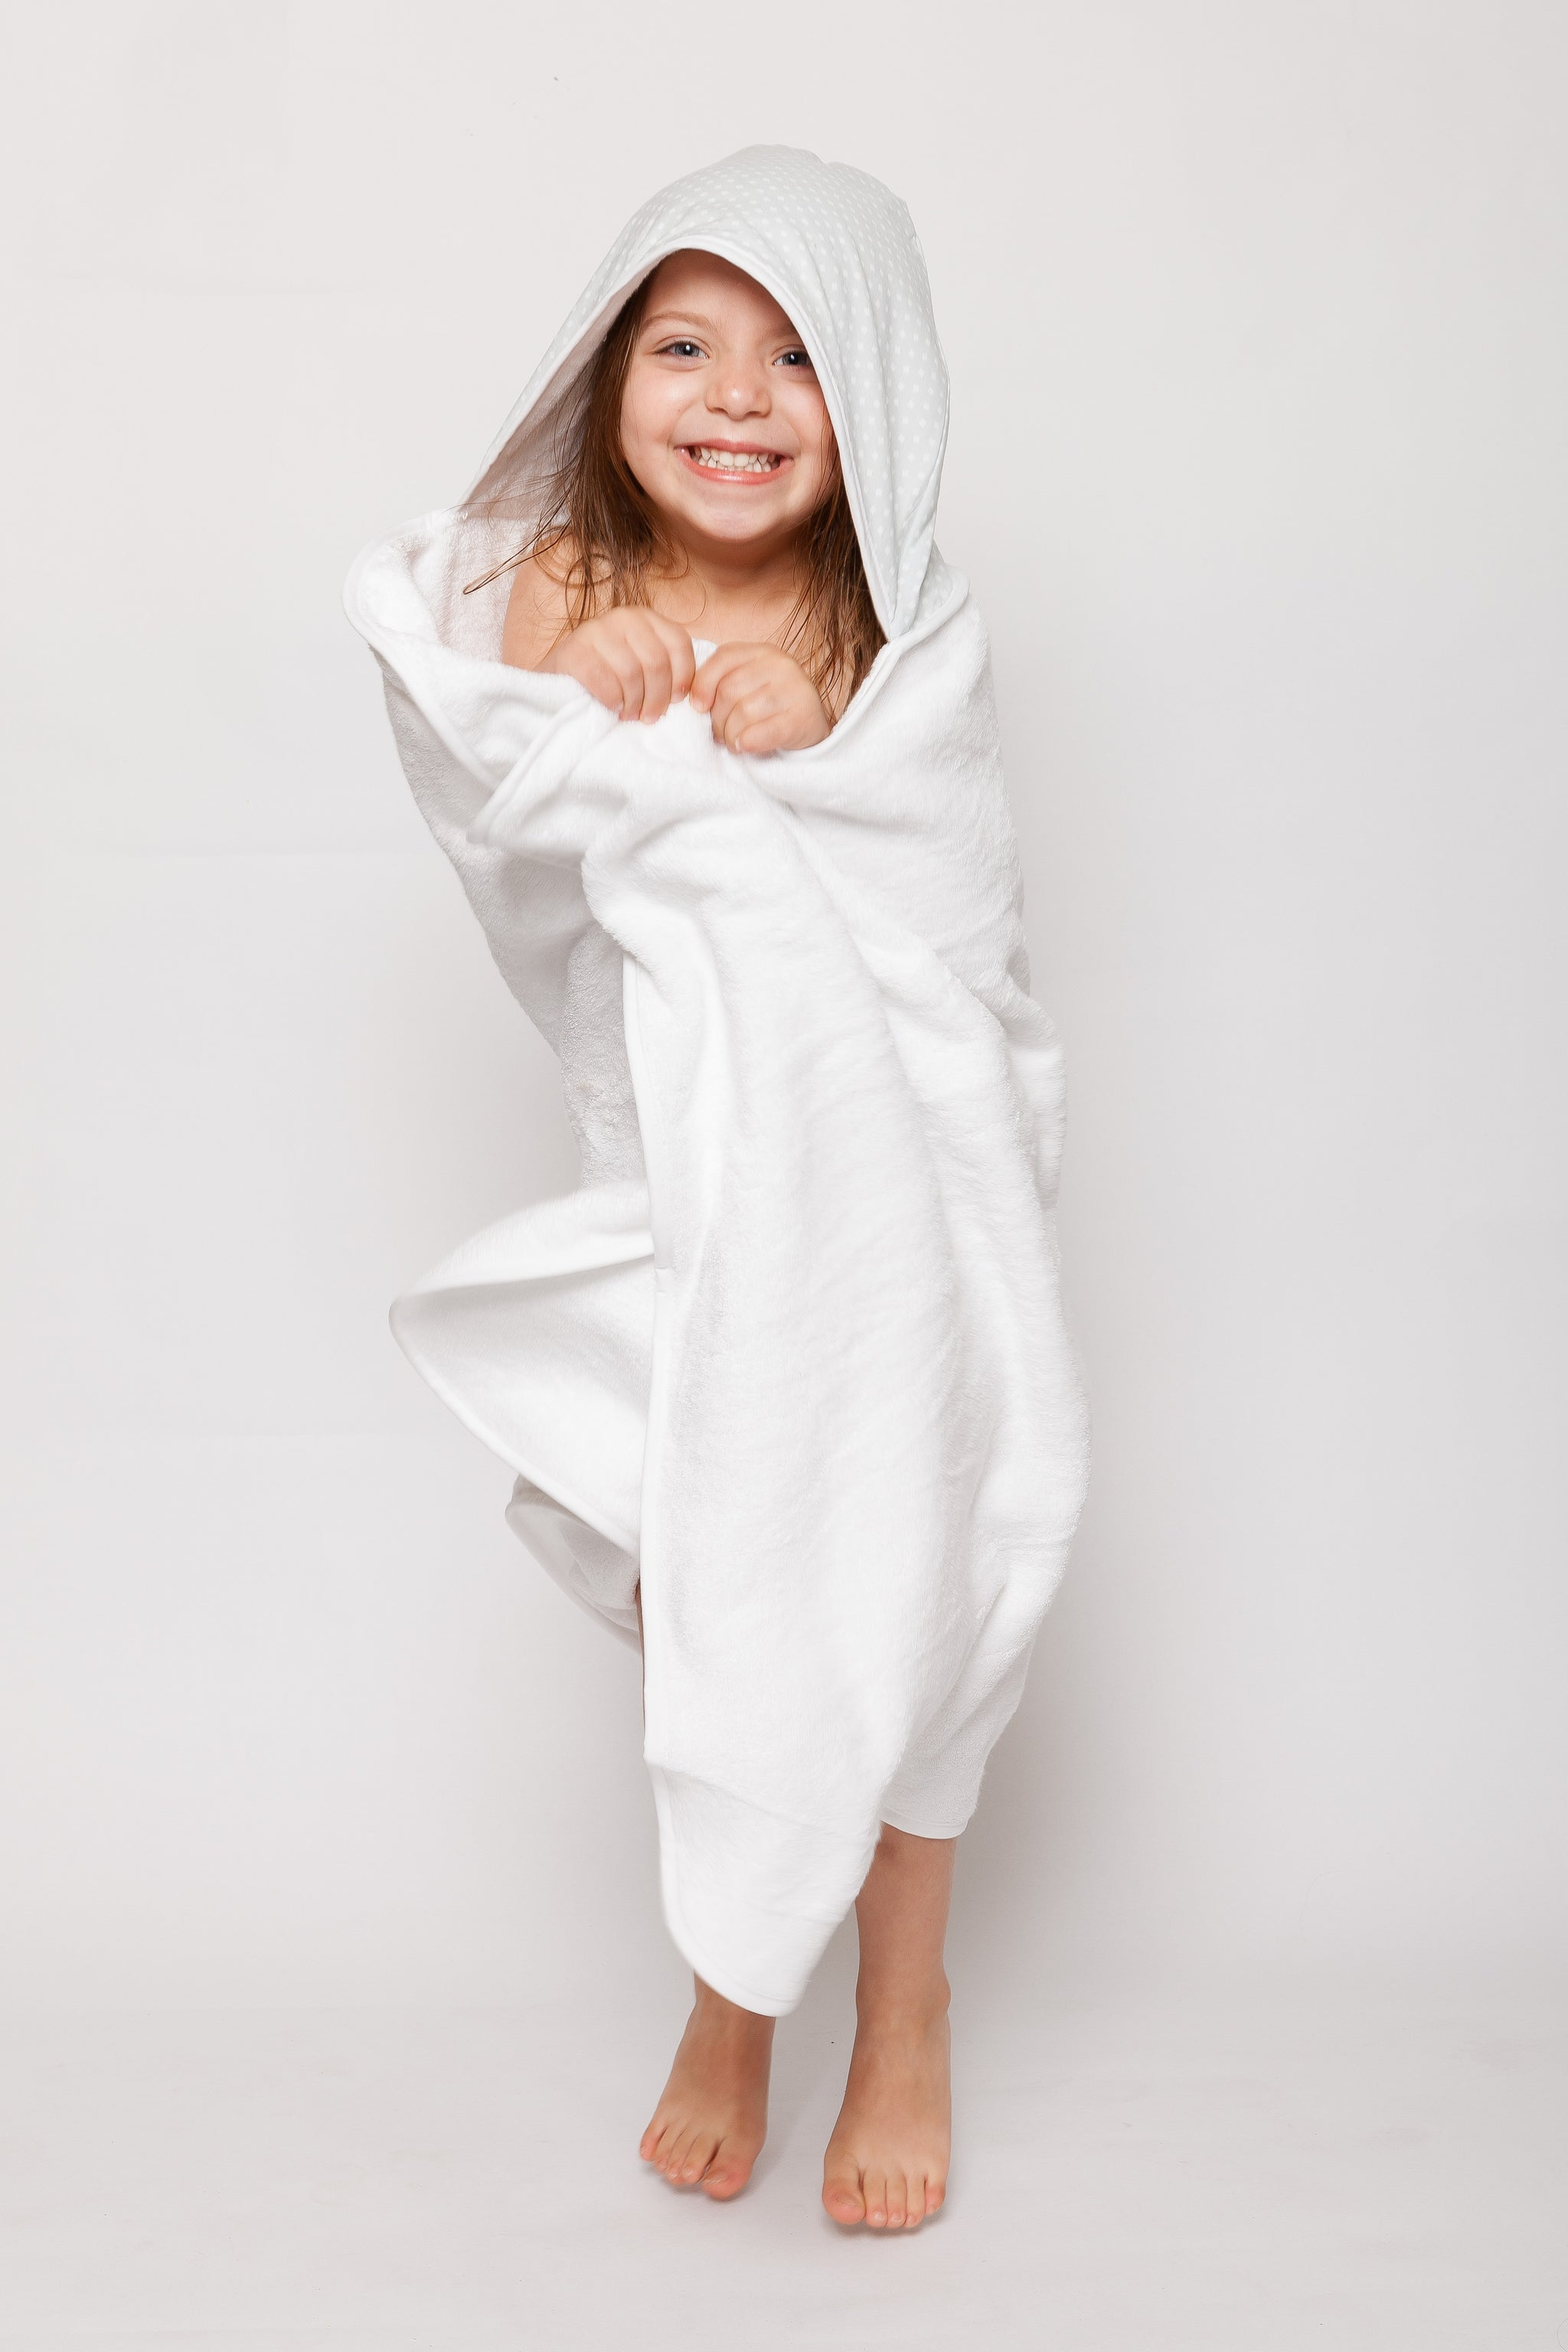 Kid with Towelling Stories Hooded Toddler Bath Towel